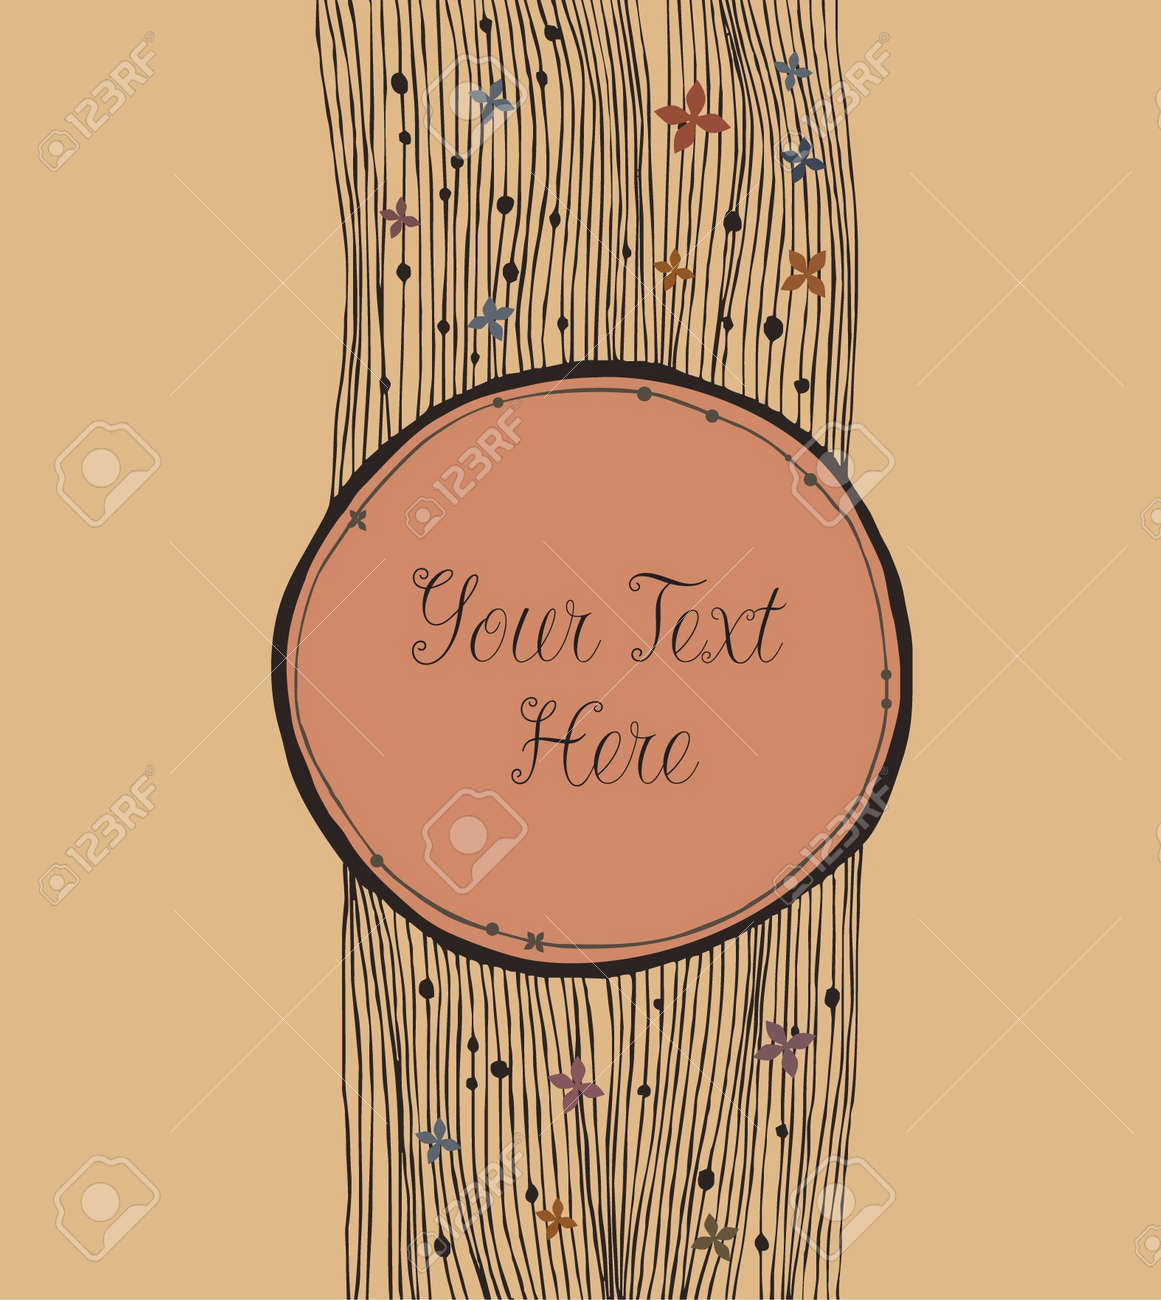 Vintage round banner  Retro elements with place for text and flowers  Can use for gifts, cards, invitations Stock Vector - 15840035